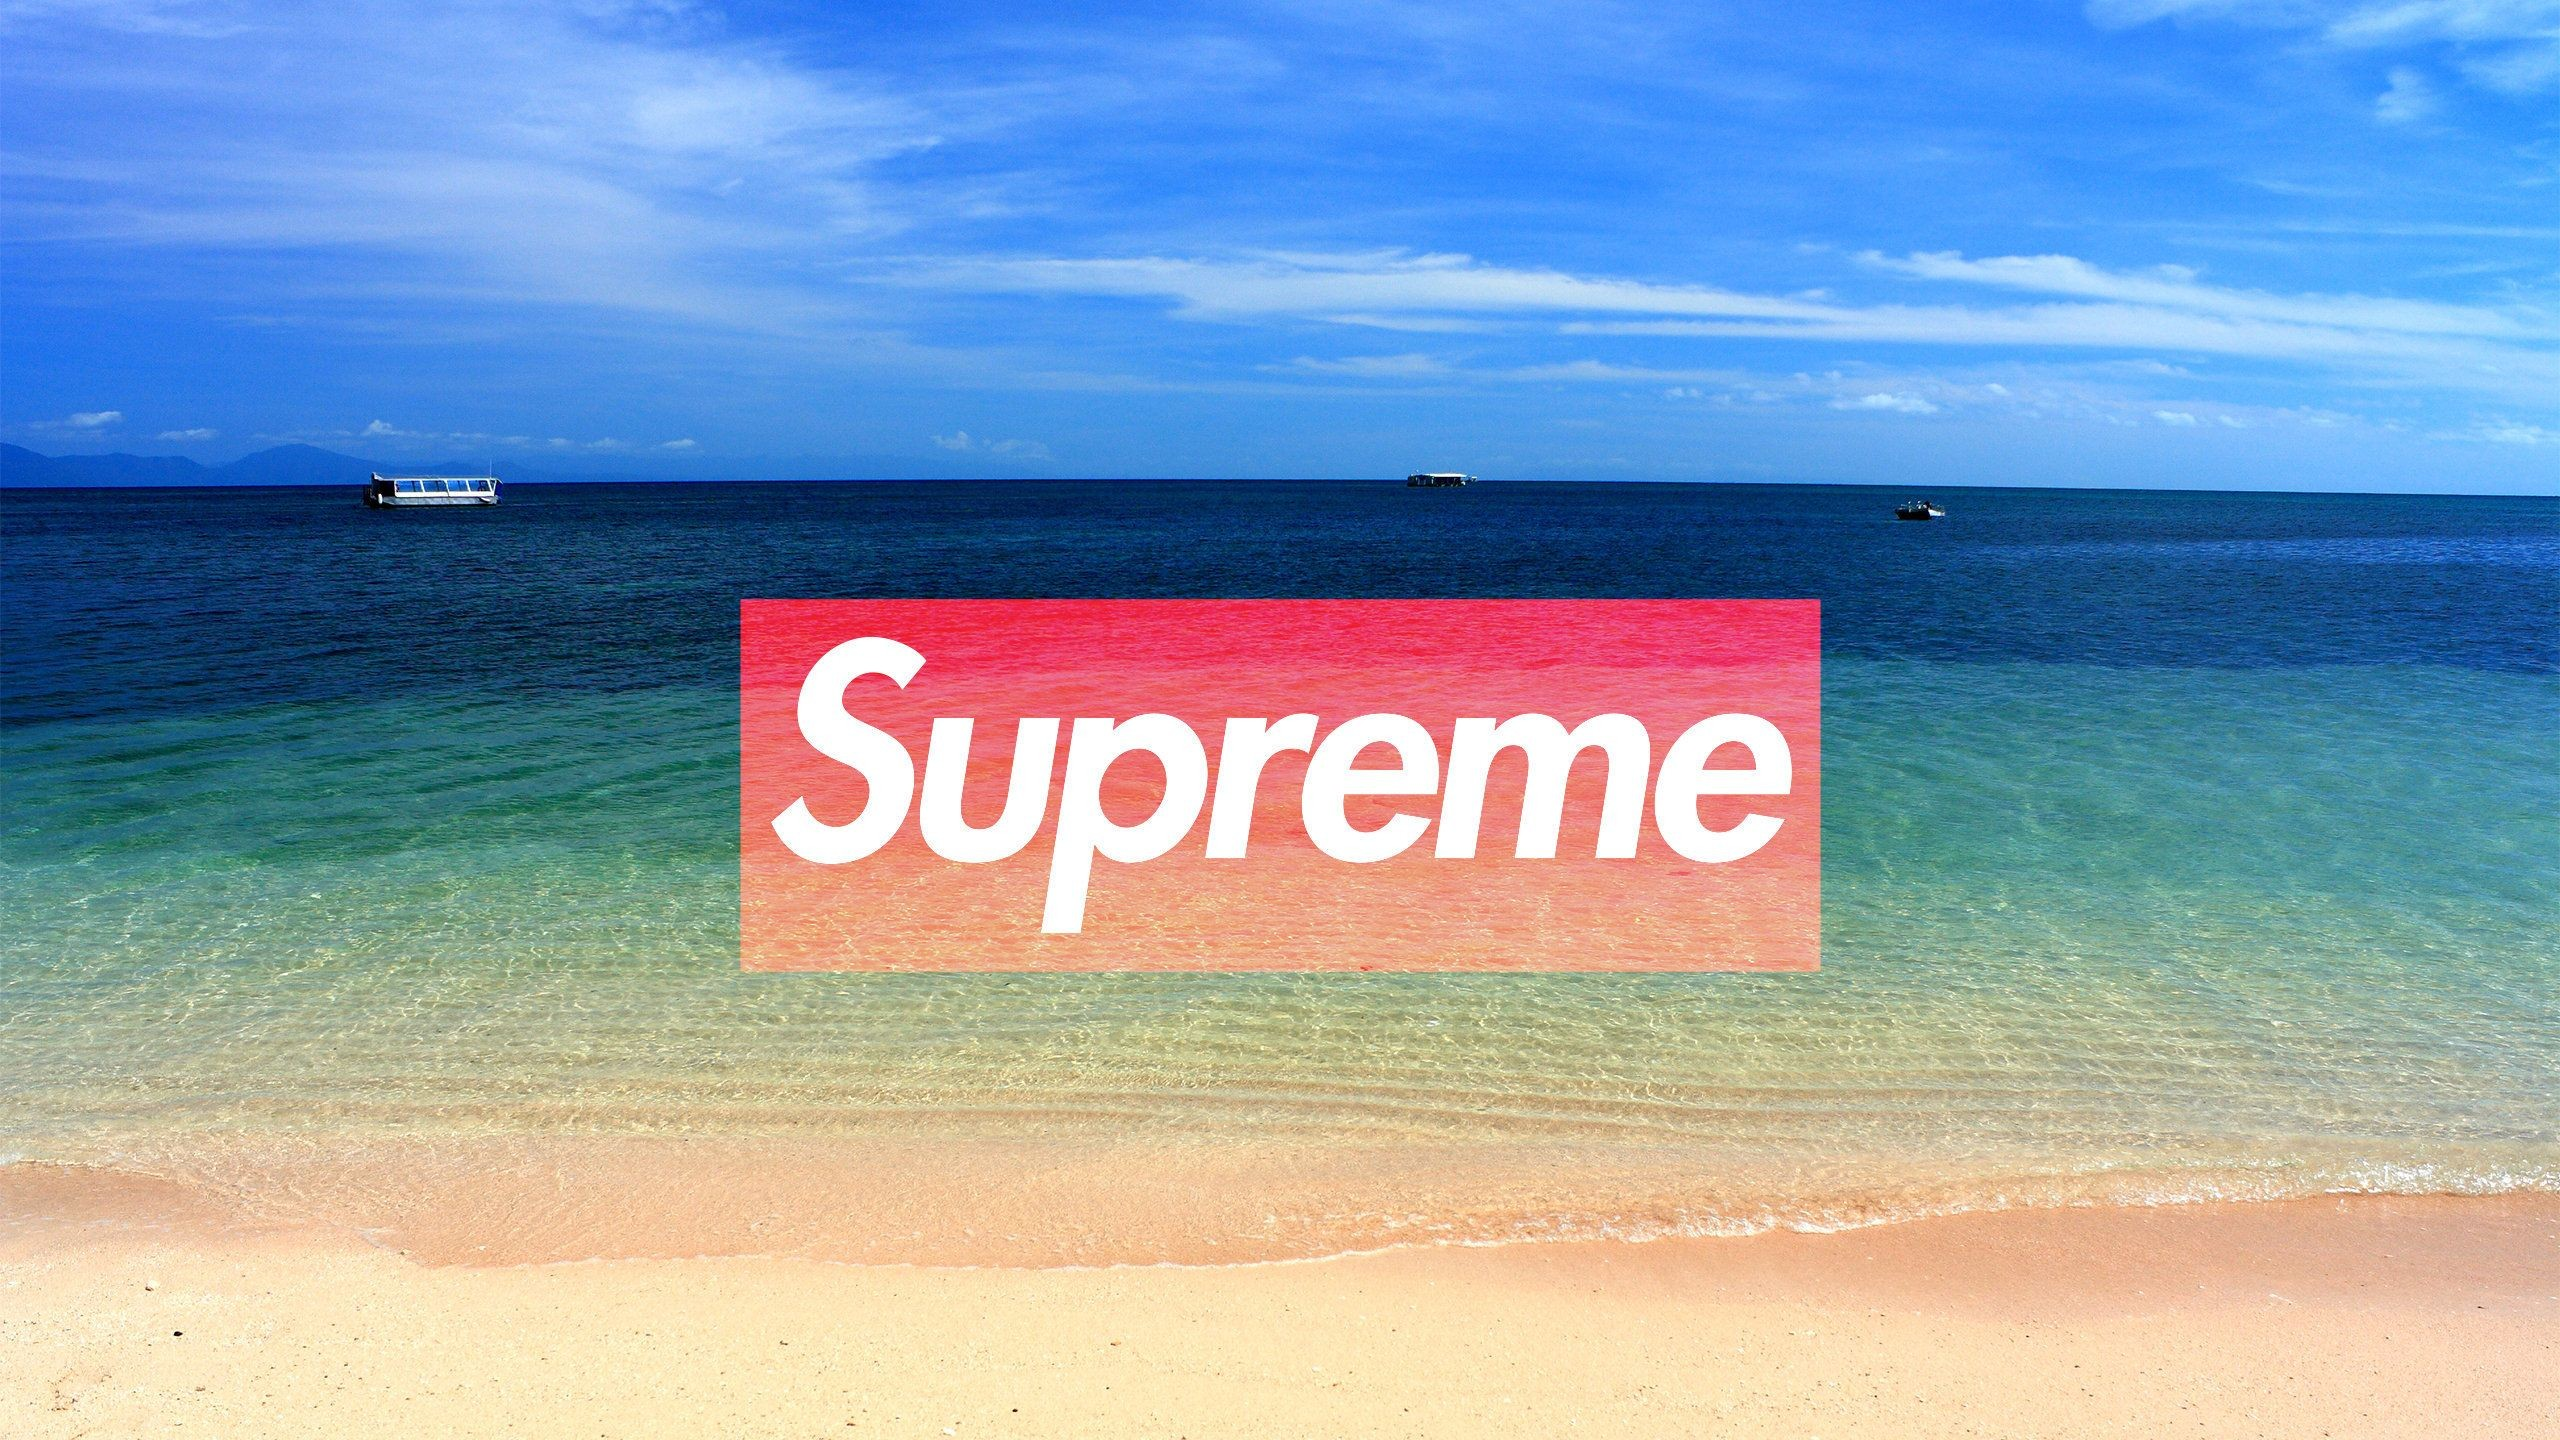 Res: 2560x1440, Supreme Wallpaper Hdq Beautiful